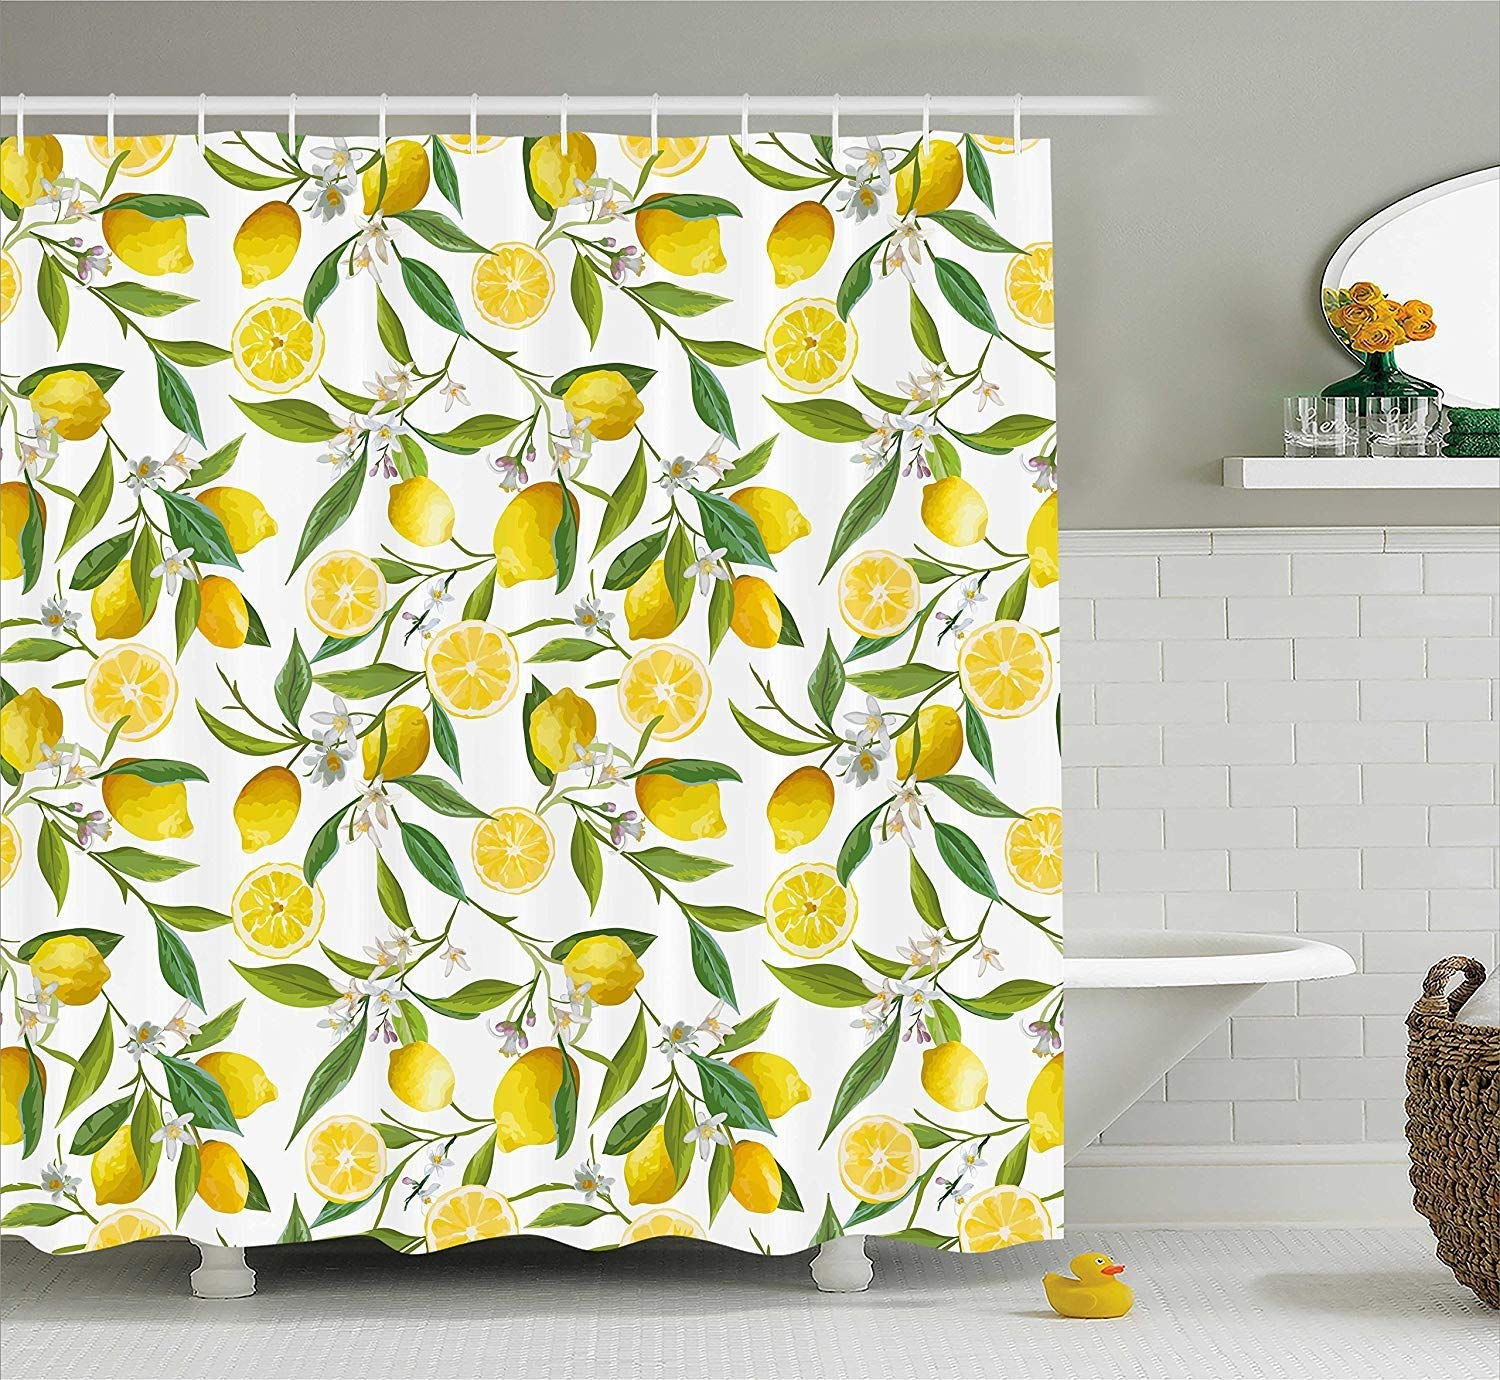 HiExotic Duschvorhang Whimsy Nature Shower Curtain Sets Exotic Lemon Tree Branches Yummy Delicious Kitchen Gardening Design,Non-Toxic Waterproof Decor,Fern Green Yellow White,60X72In